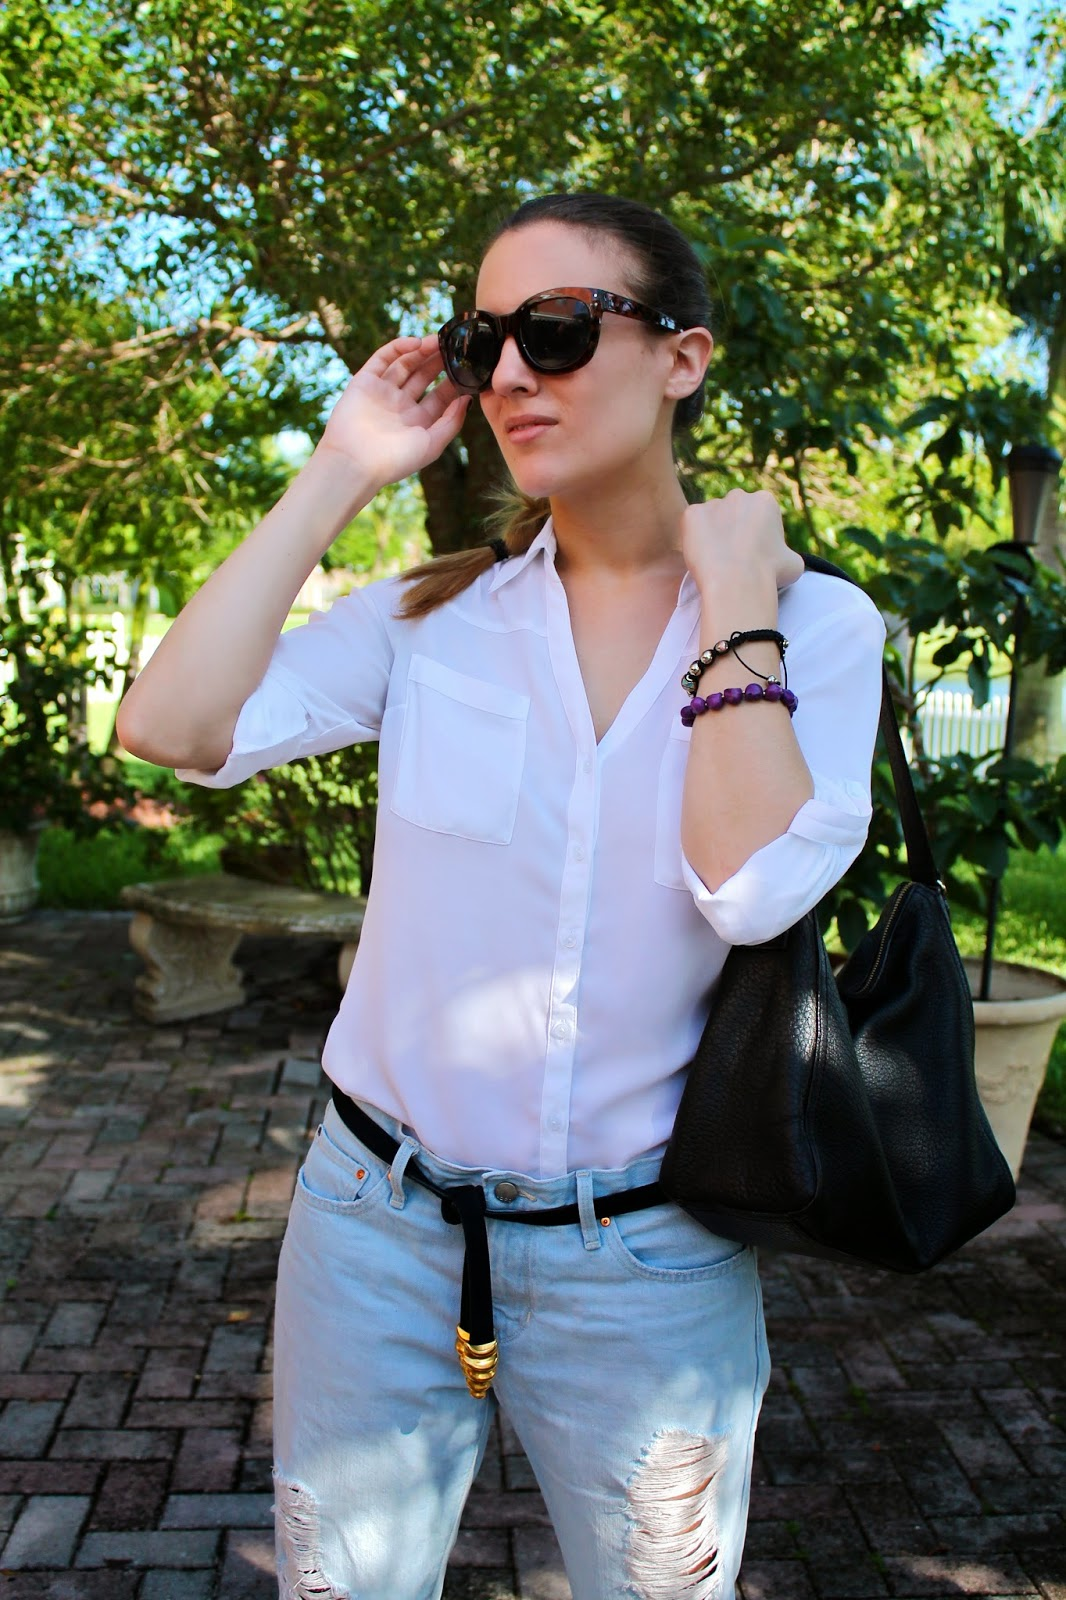 Gap, Express, Nordstrom, Coach, vintage, Kate Spade, classic, edgy, preppy, fashion, style, fashion blog, Miami fashion blogger, Miami blogger, what I wore, lookbook, Miami, style blog